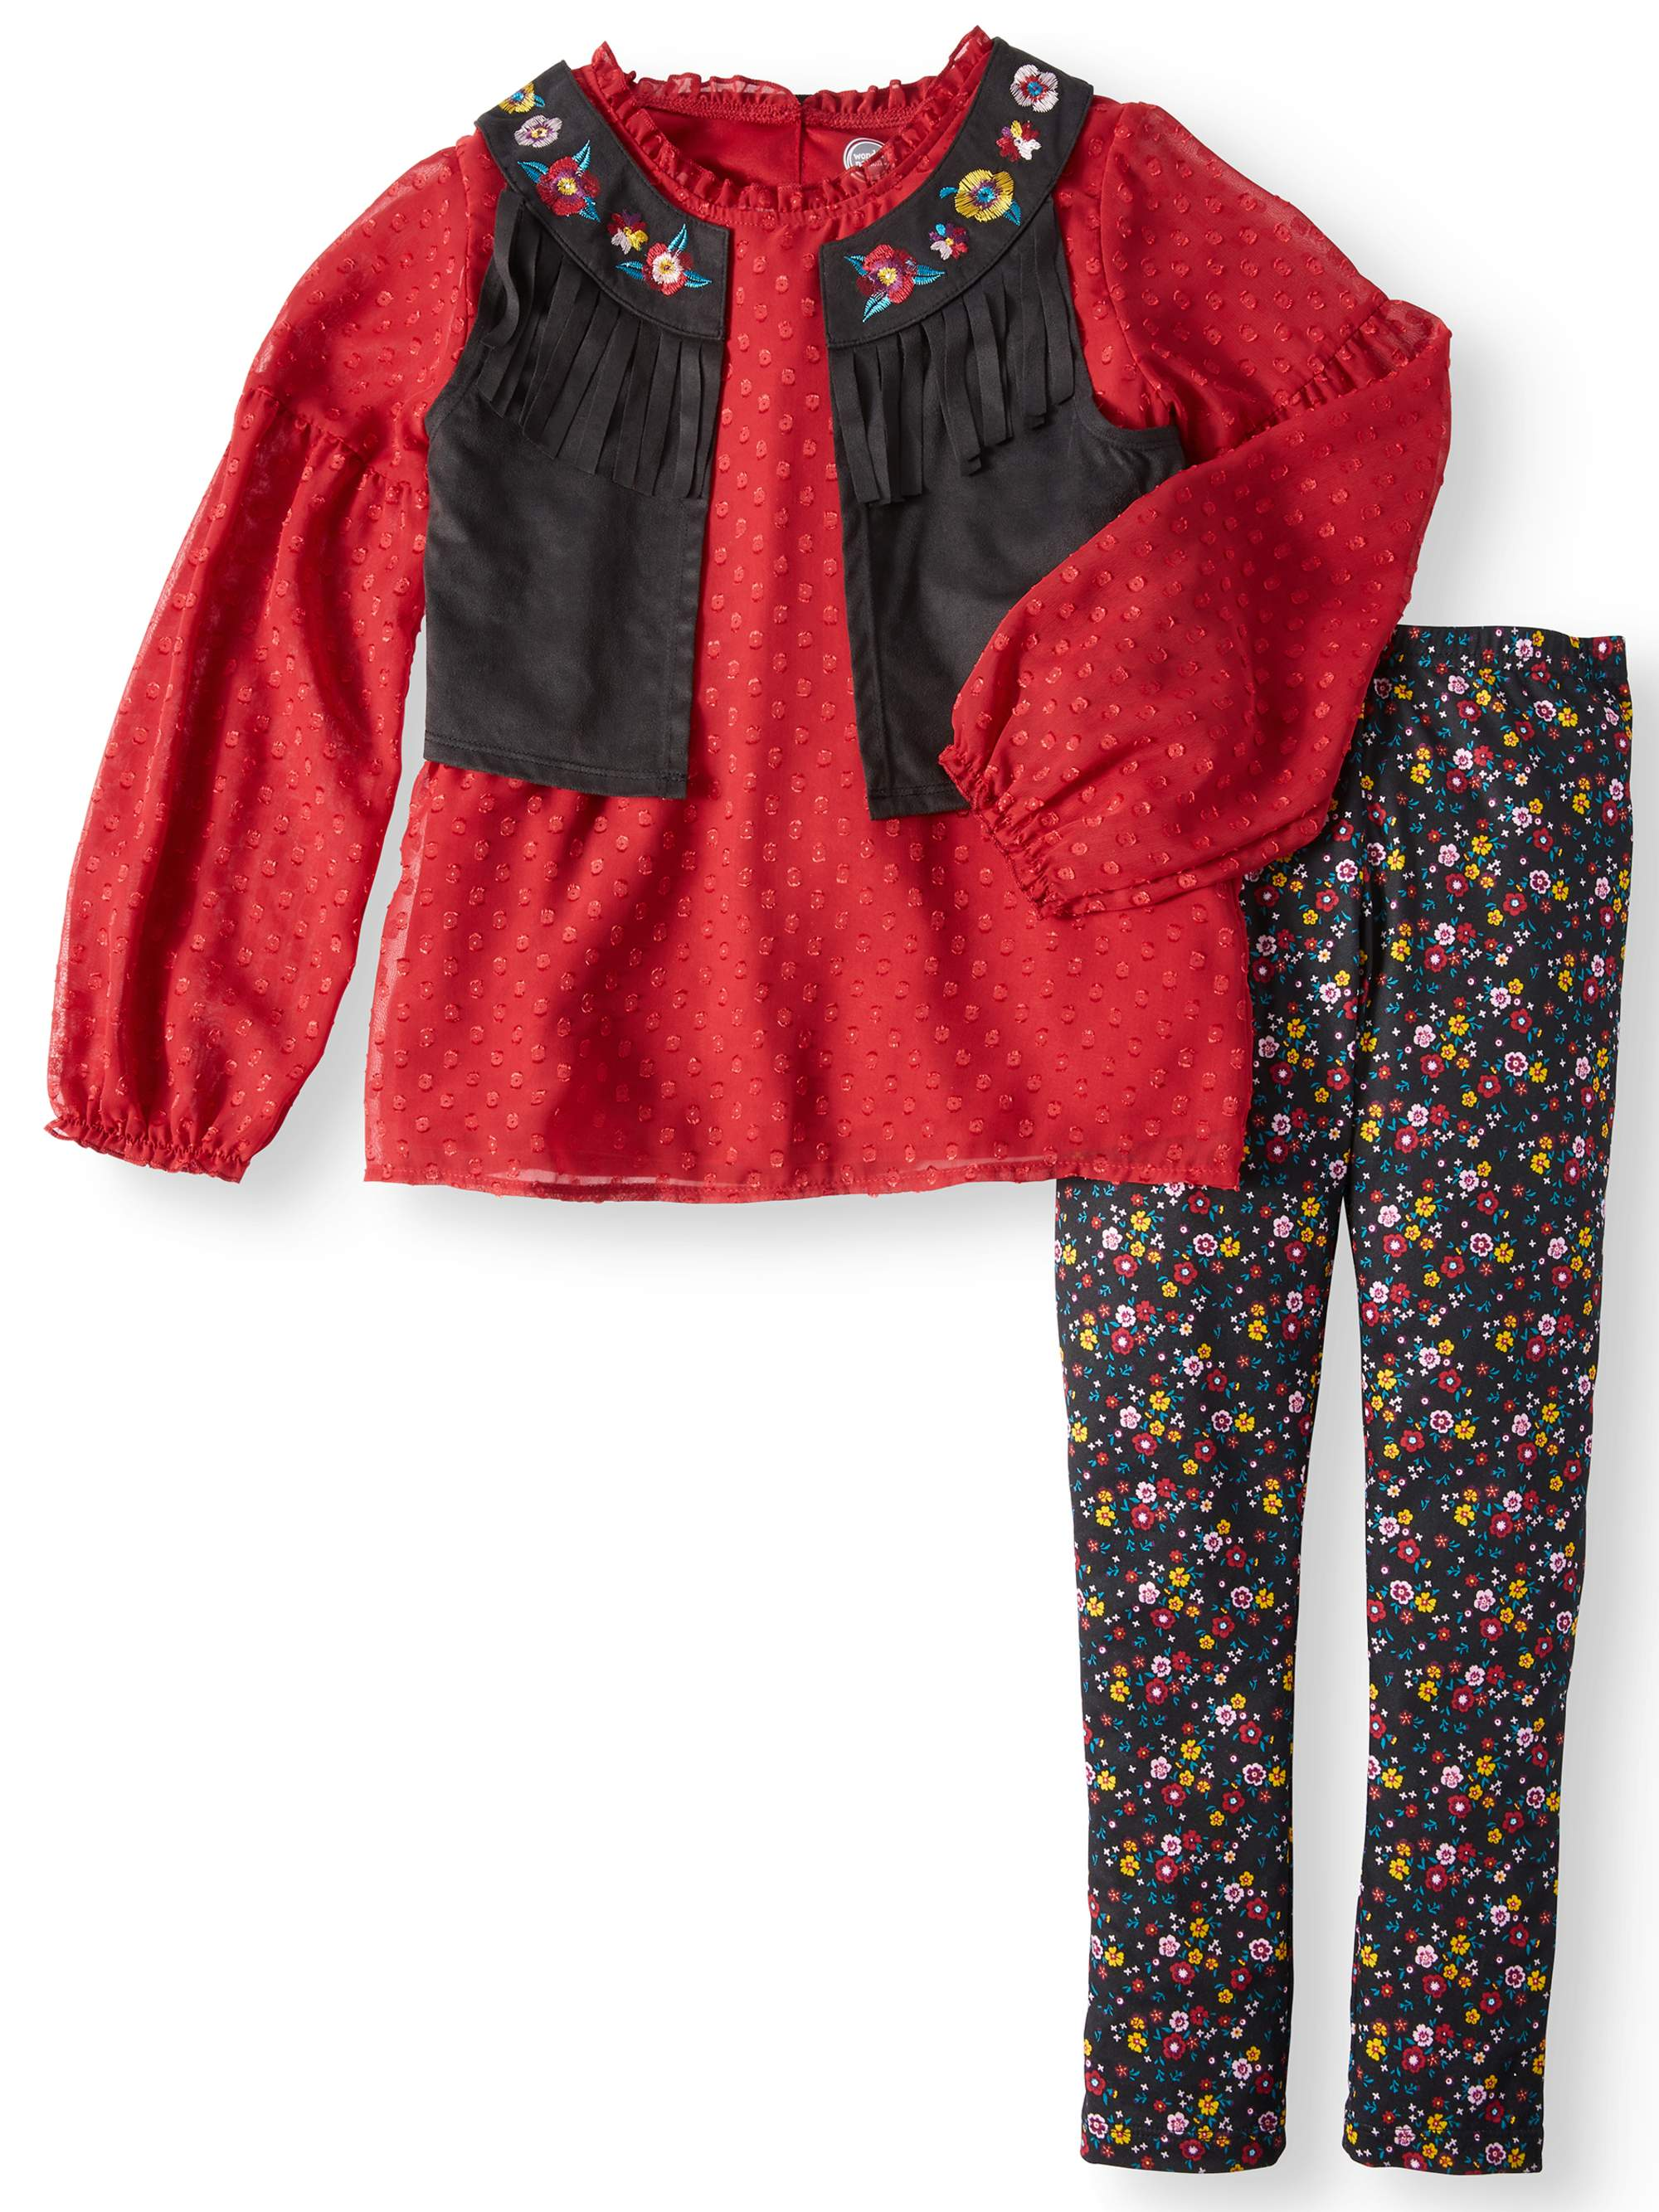 Boho Vest, Lace Top and Leggings, 3-Piece Outfit Set (Little Girls & Big Girls)